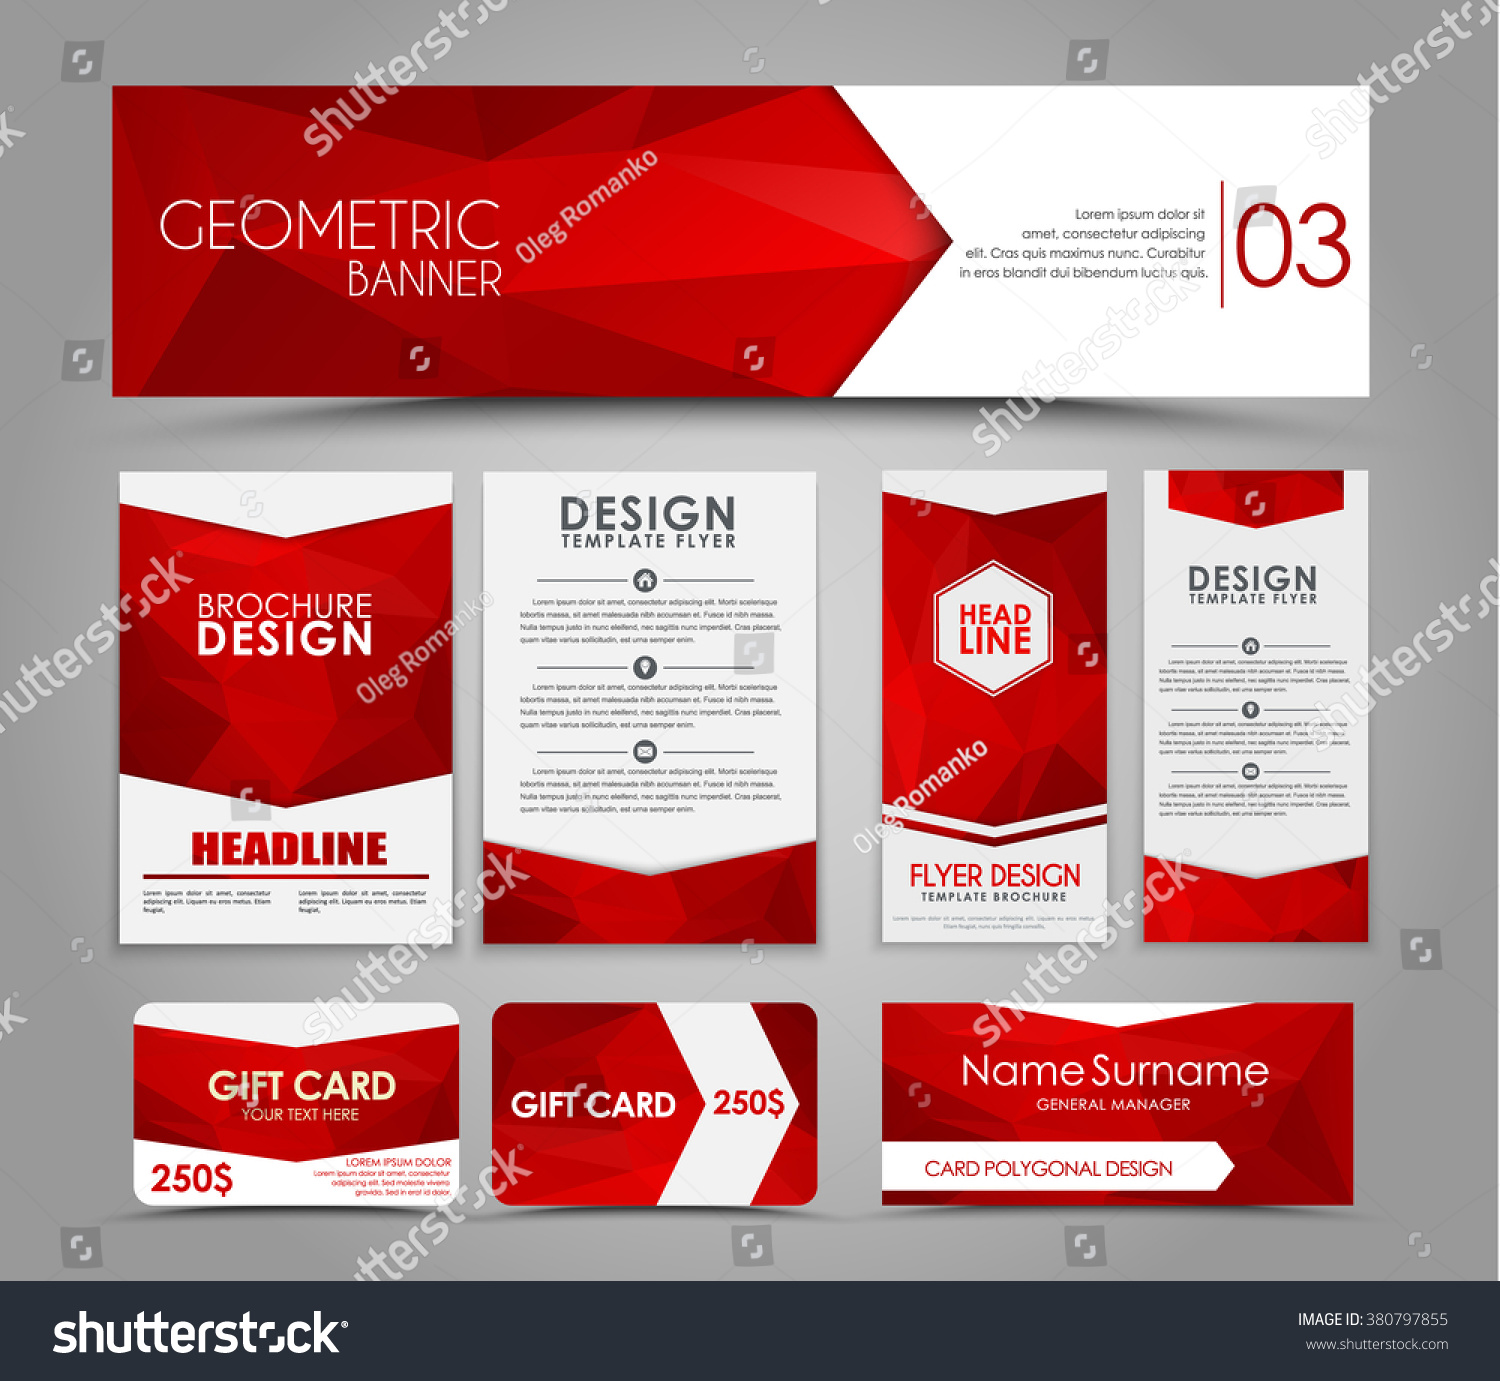 design flyers banners brochures cards red stock vector  design of flyers banners brochures and cards red polygonal elements corporate identity